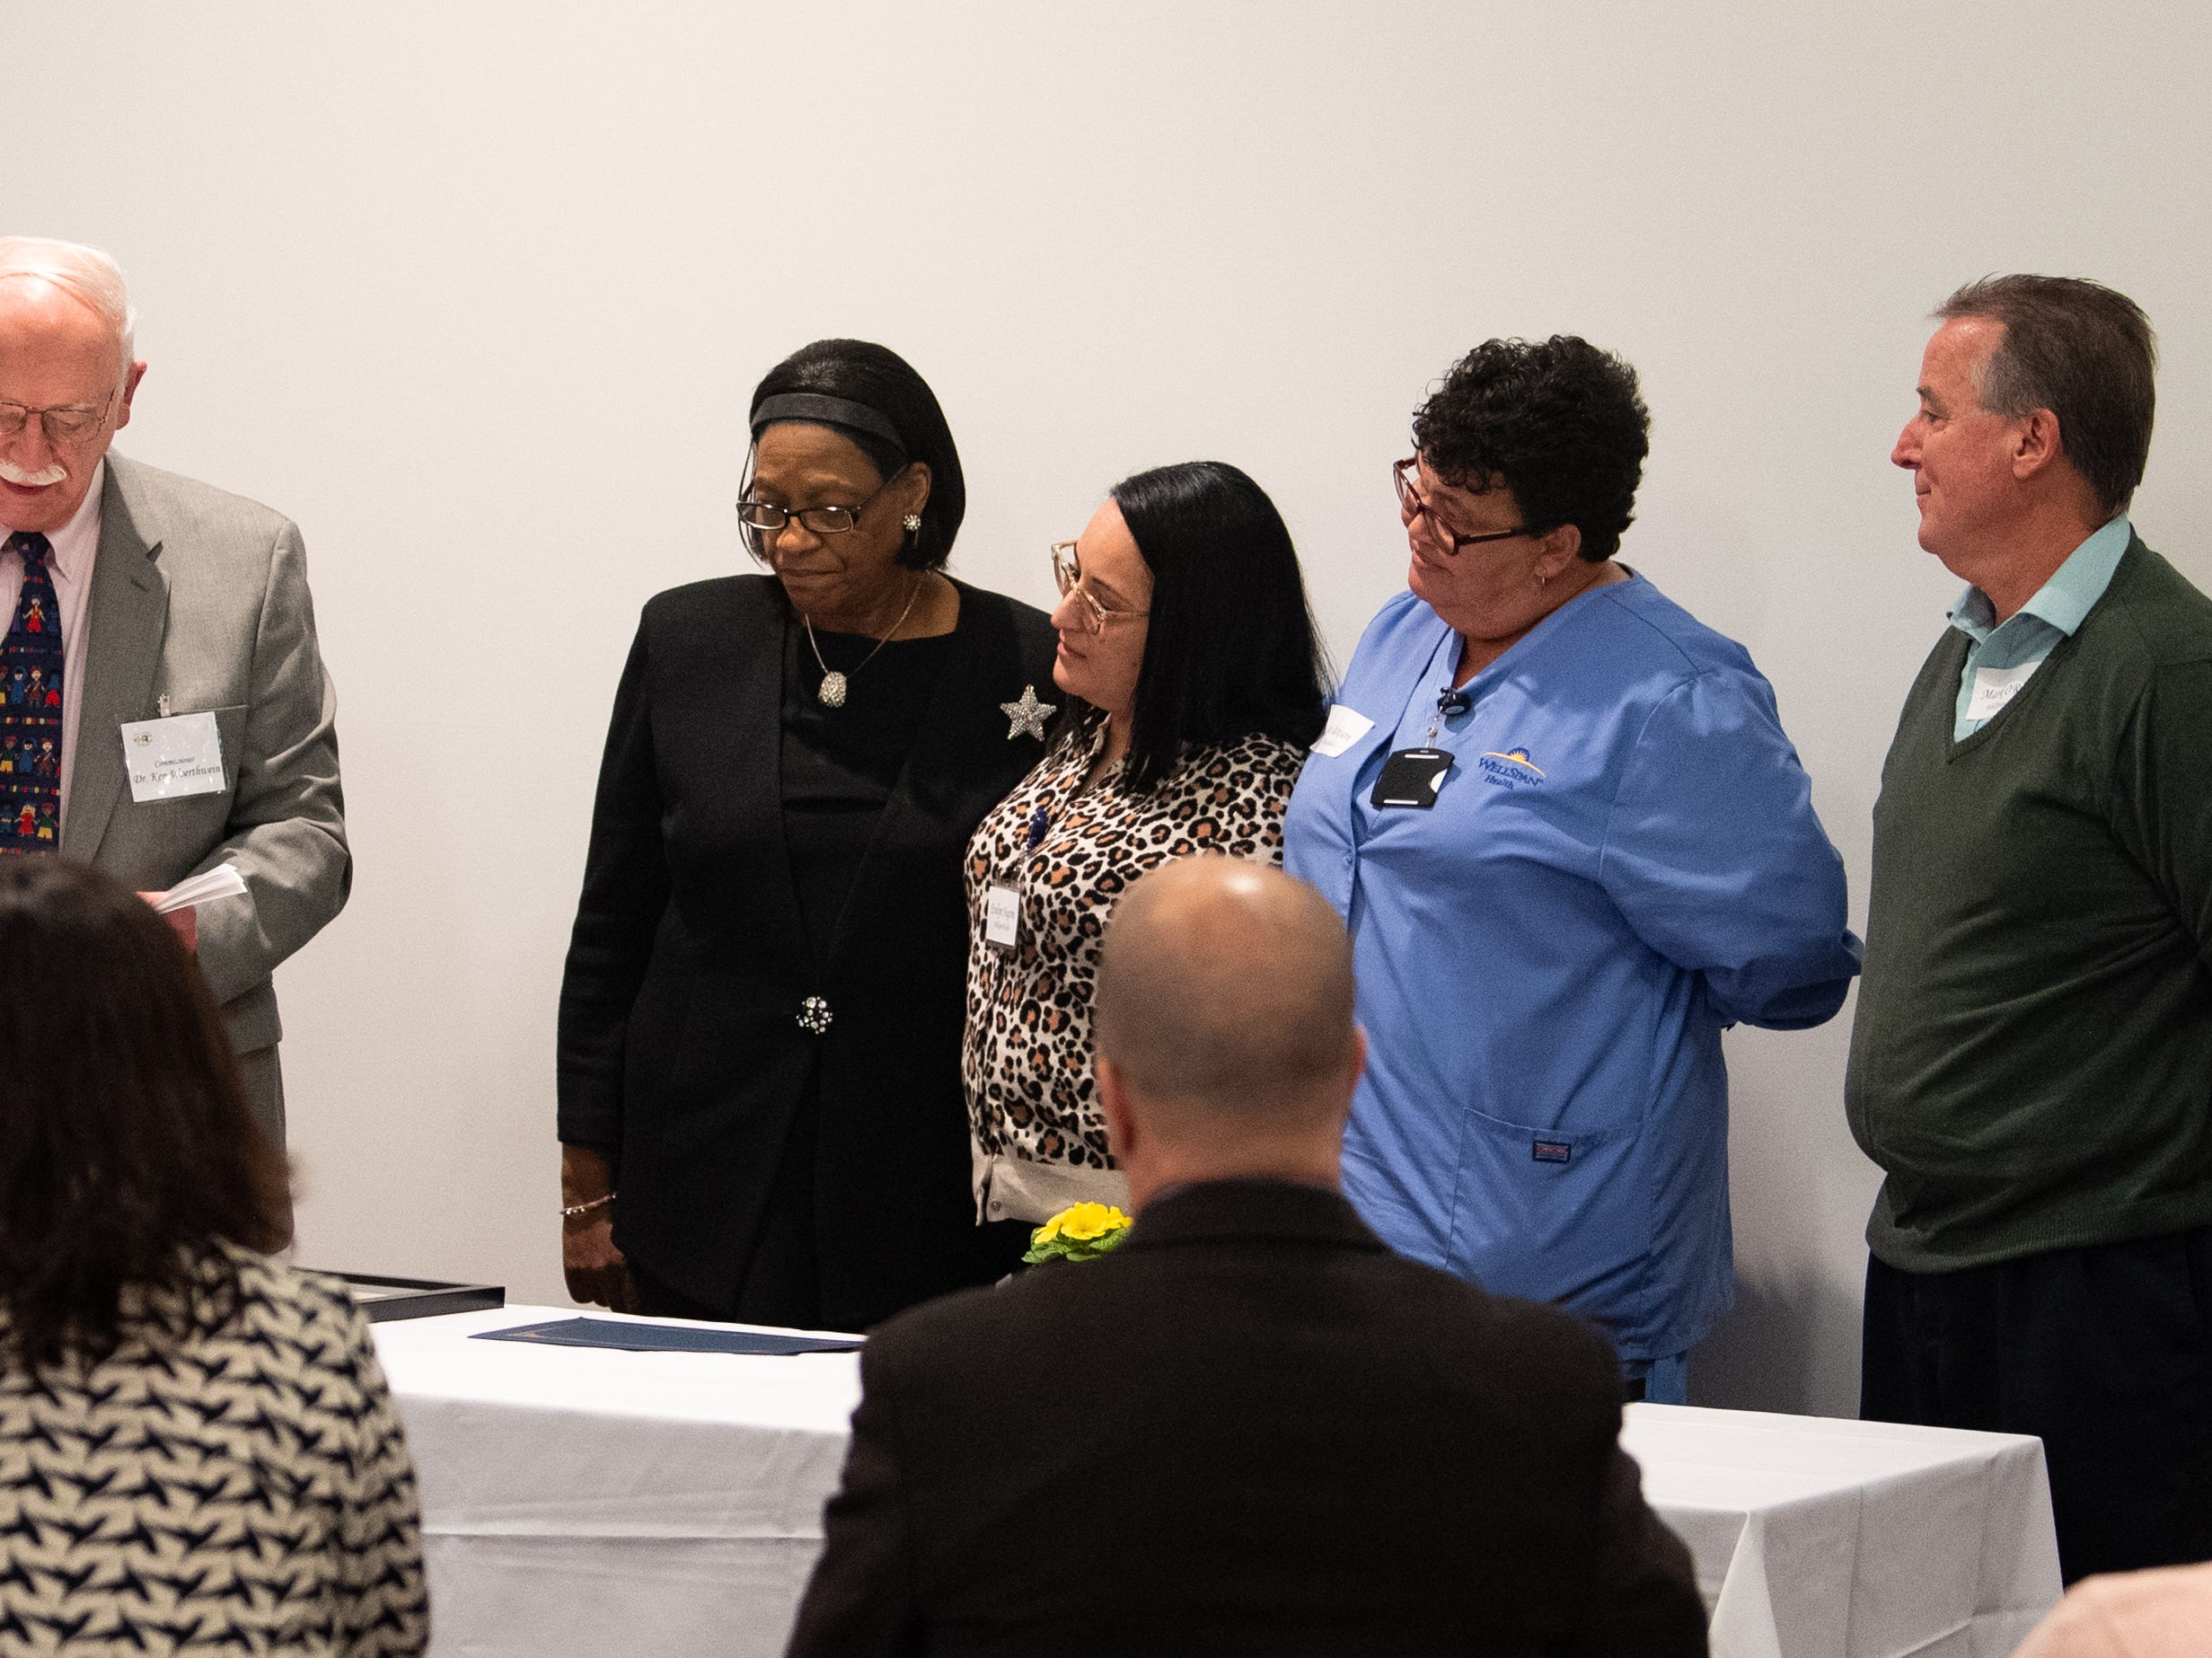 Dr. Kenneth Woerthwein (left) presents the Small Business Award Of The Year to the WellSpan Family Medicine of Bannister Street during the 2019 City of York Human Relations Commission Diversity Dinner at York College, January 9, 2019.